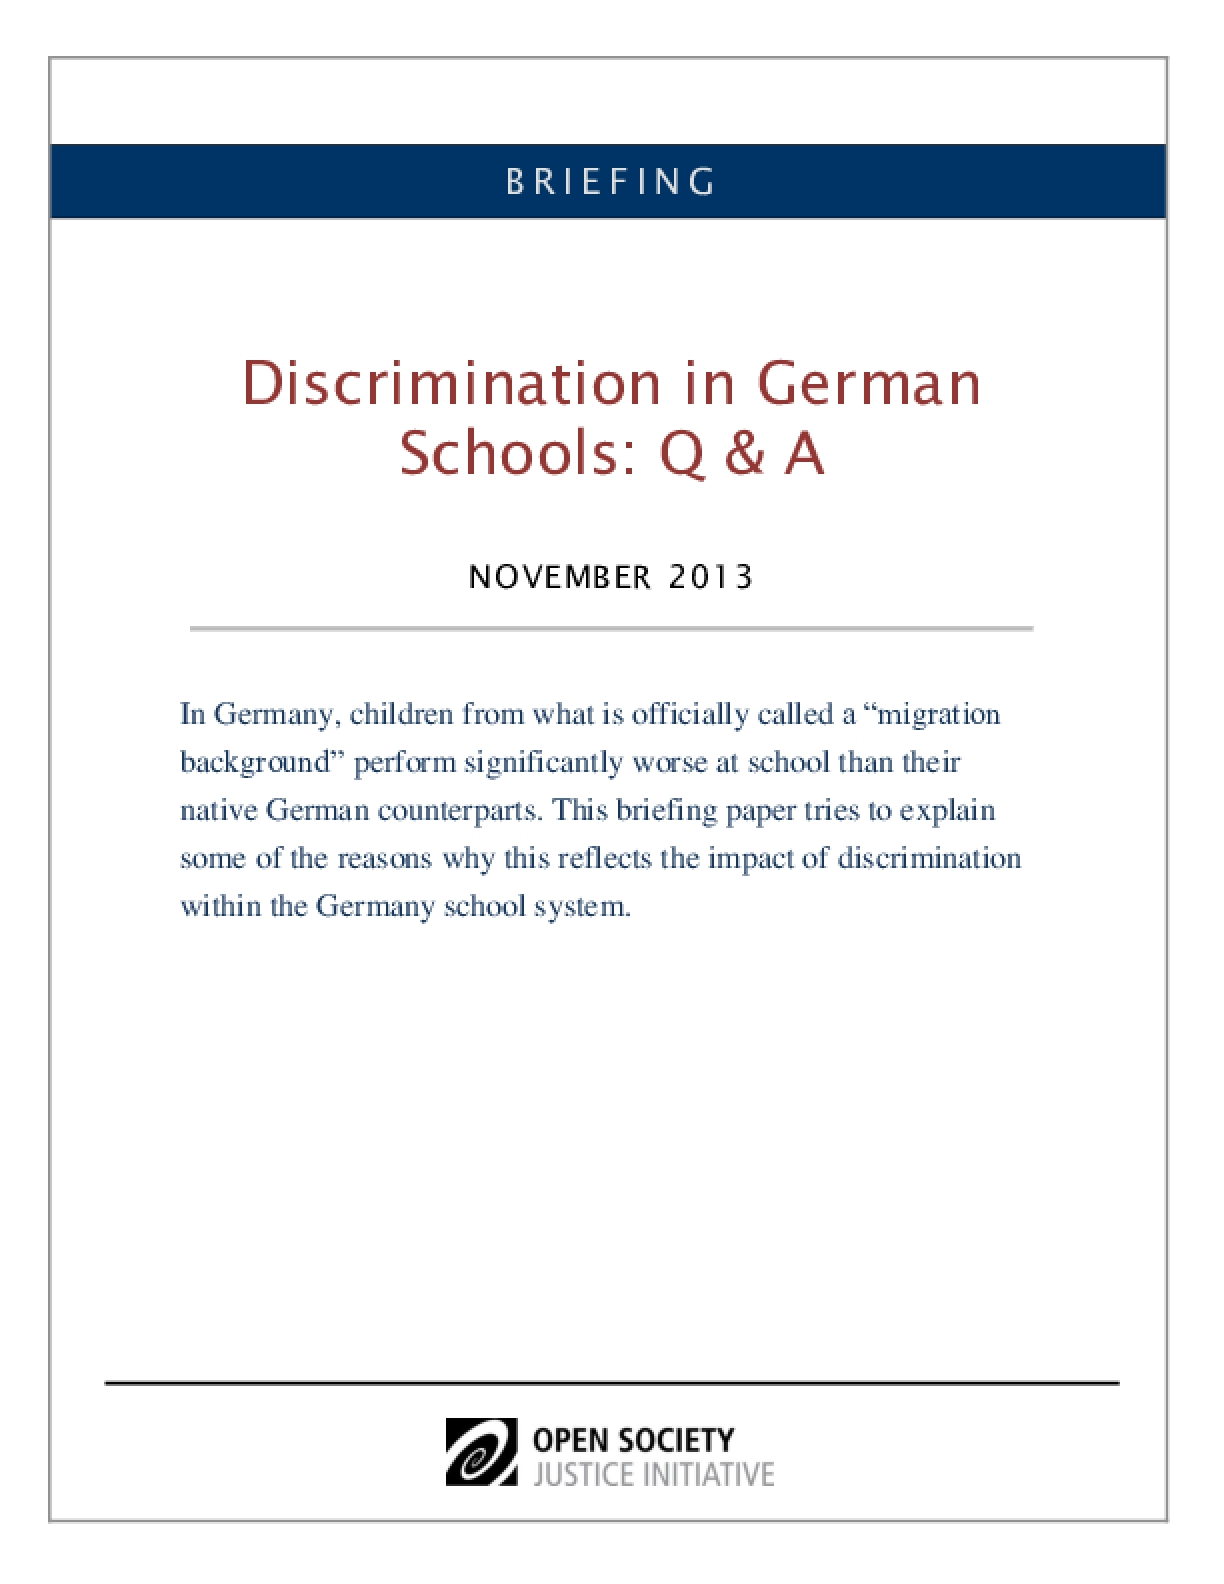 Discrimination in German Schools: Questions & Answers